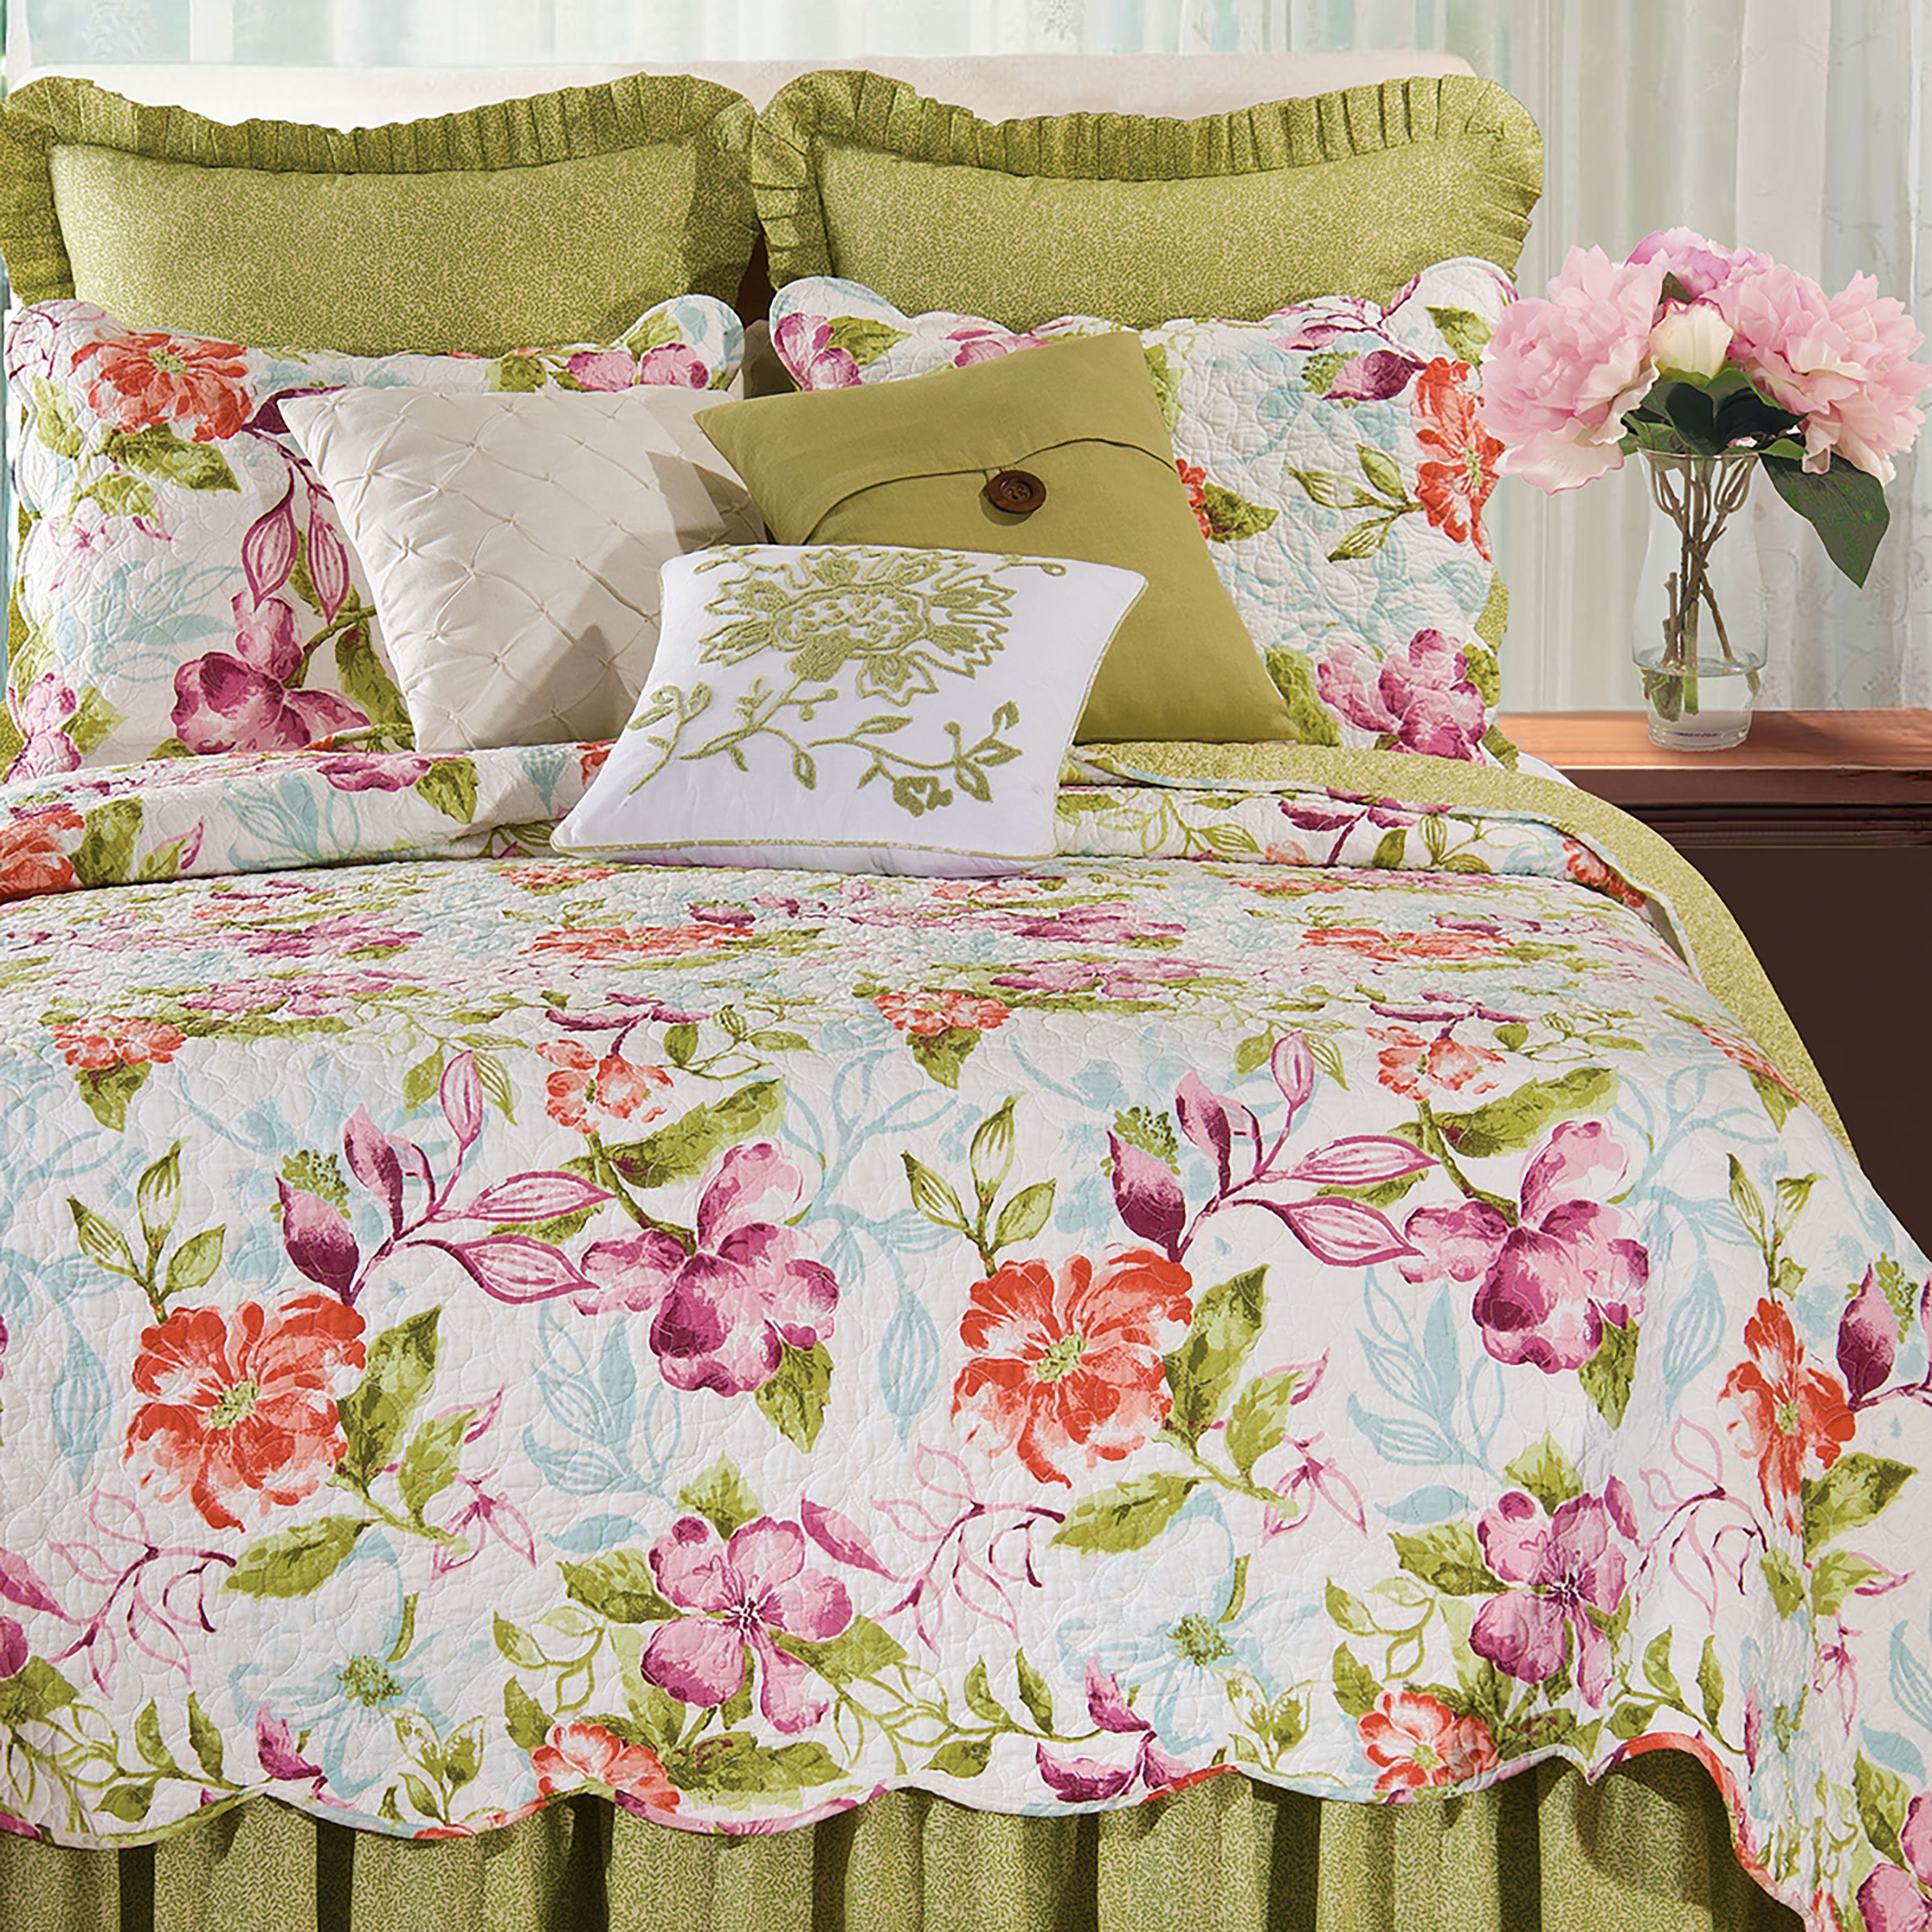 Color Blooms Quilt, Multi, King Quilt by C&F Home